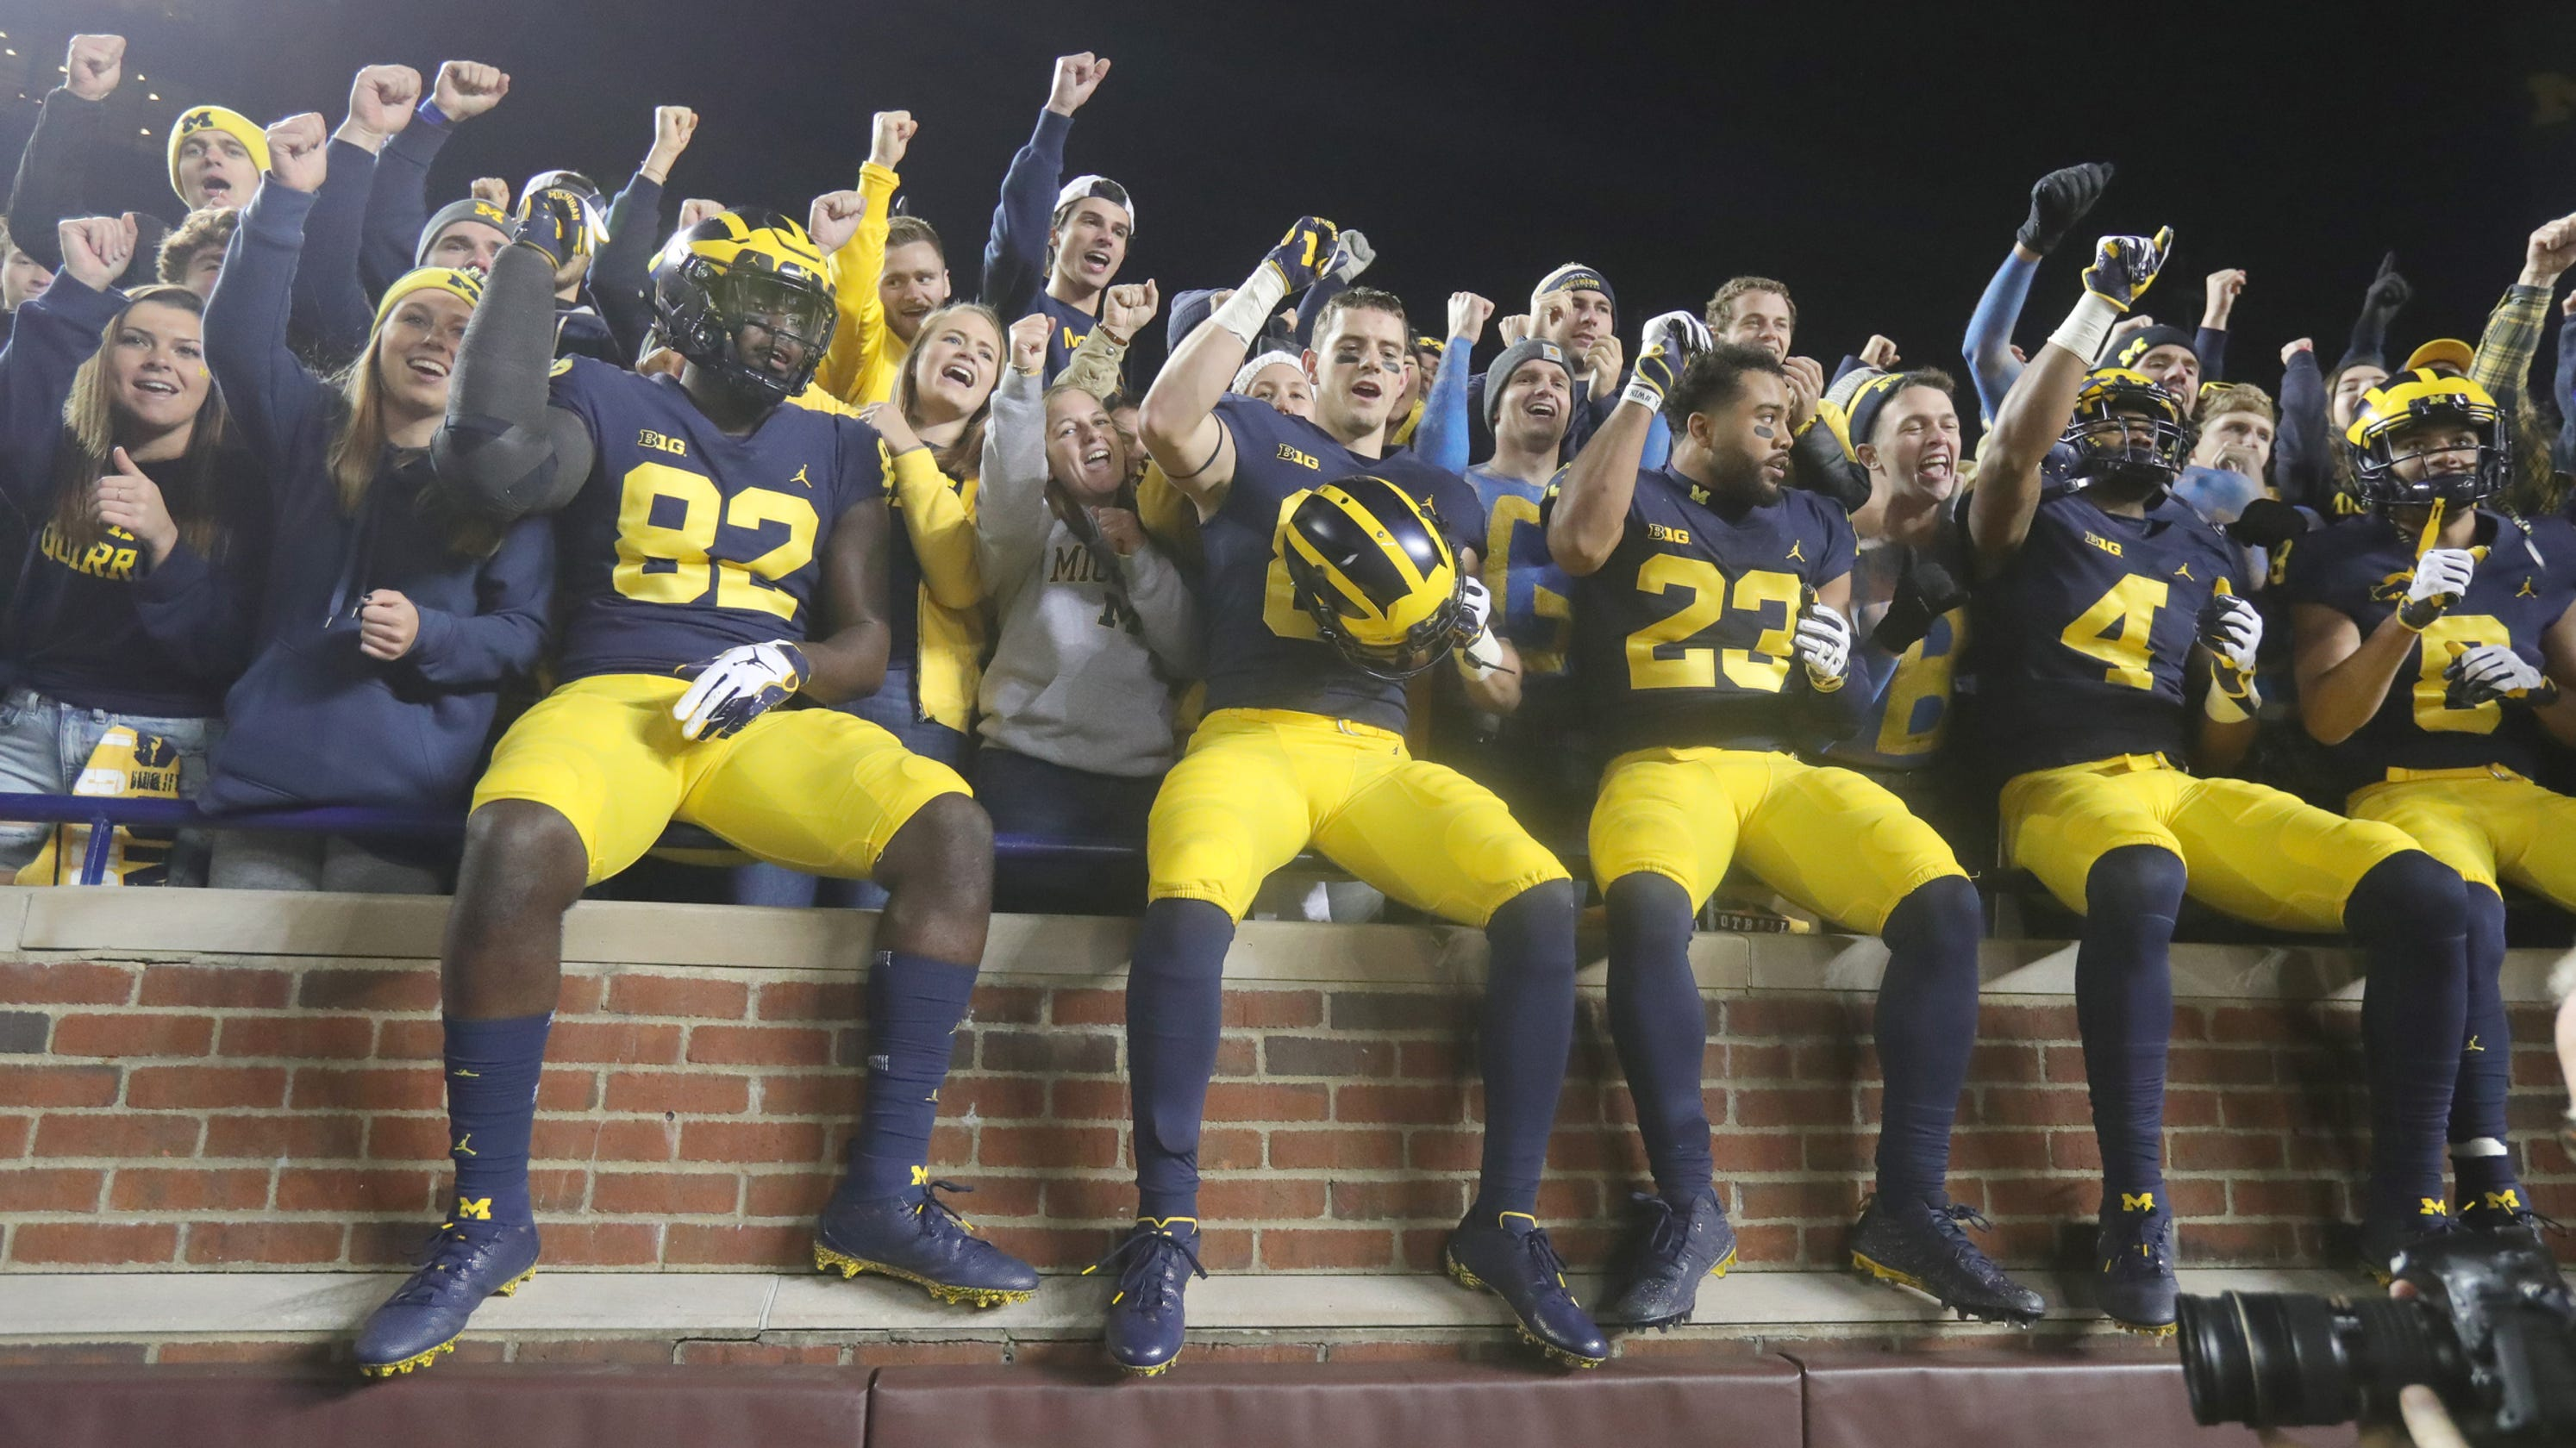 1526855d7214 Michigan chat recap: What's Wolverines' weakness? Why'd Webber snub hoops?